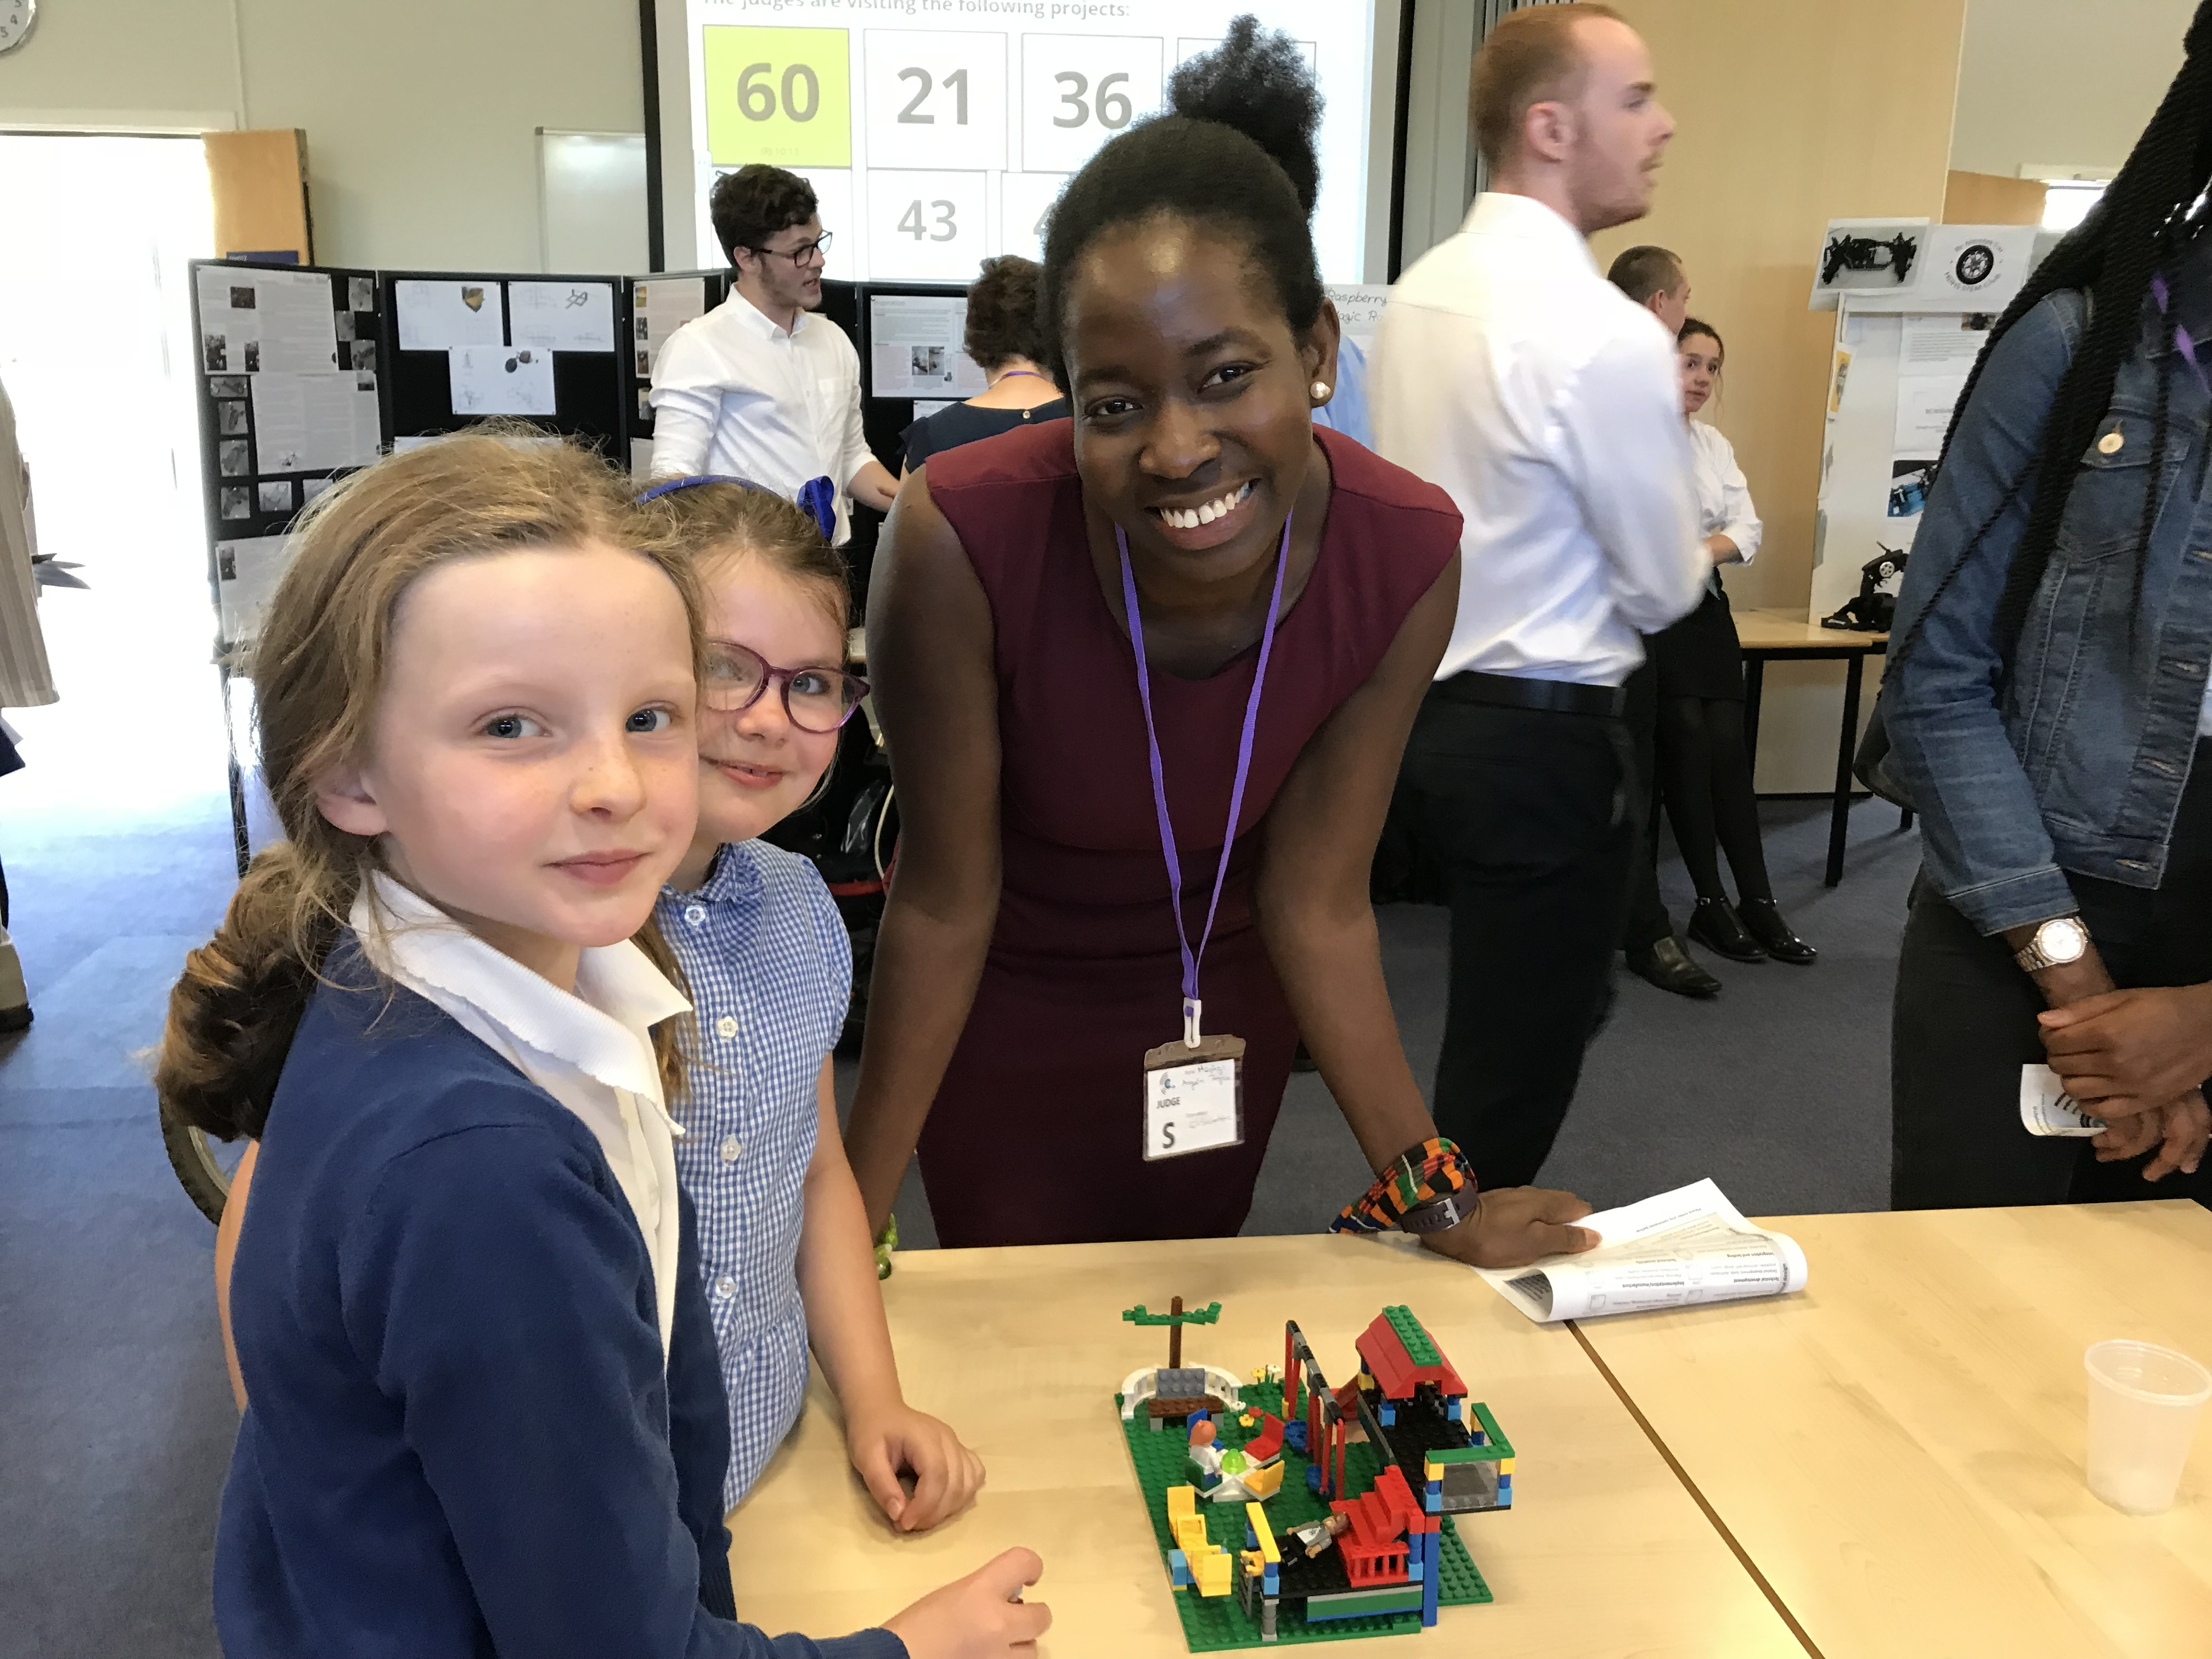 Competition judge Hephzi Angela Tagoe speaks with primary school pupils Erika and Rose